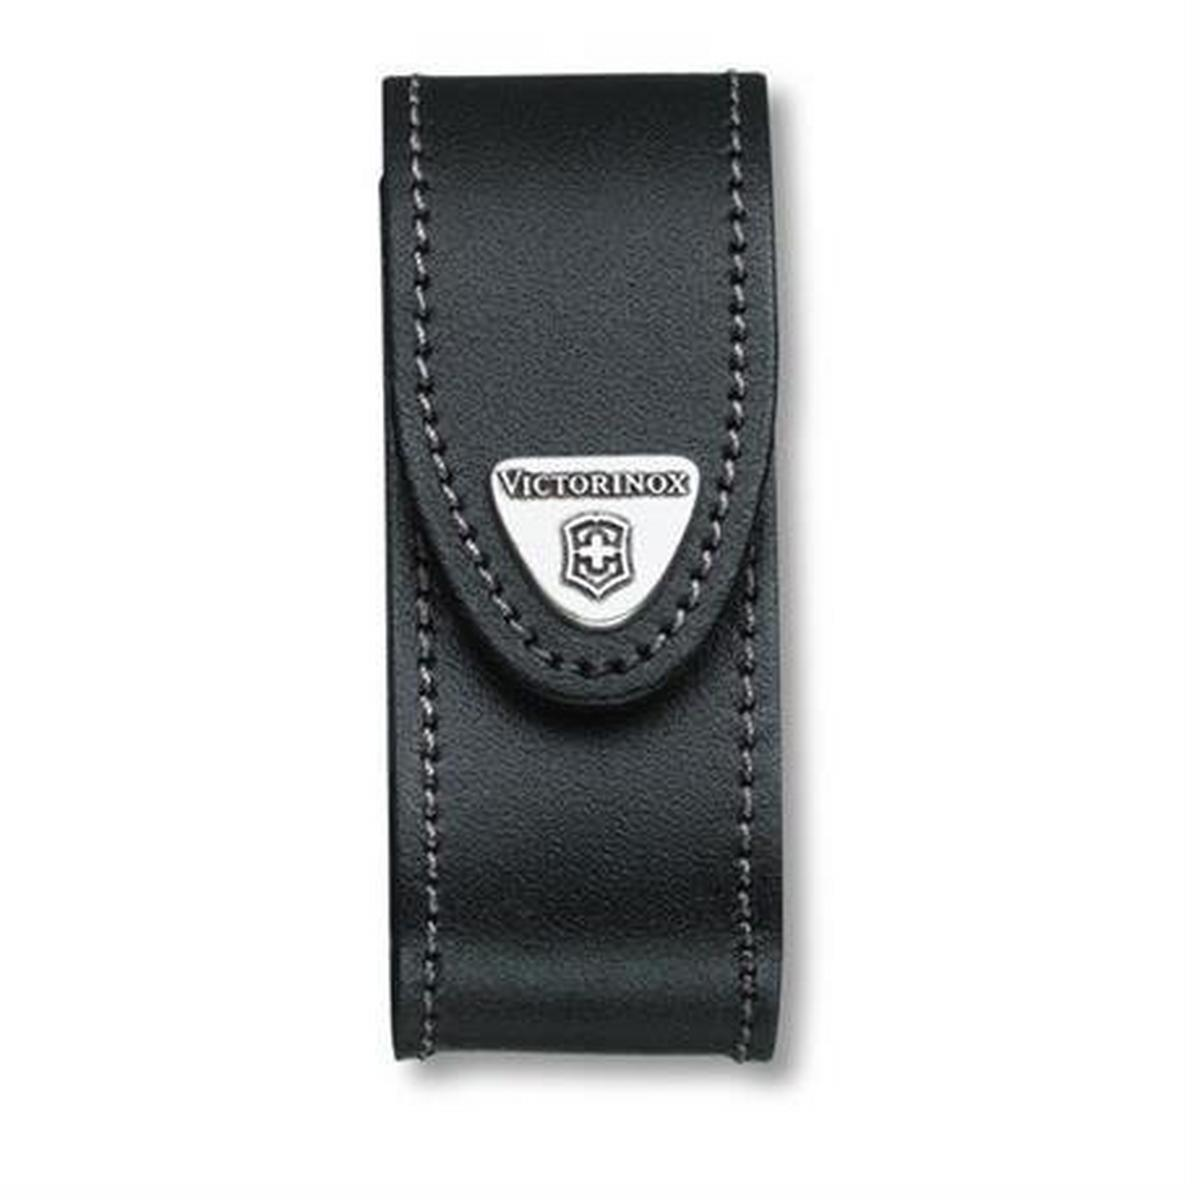 Swiss Army Victorinox Swiss Knife Spare / Accessory Black Leather Belt Pouch